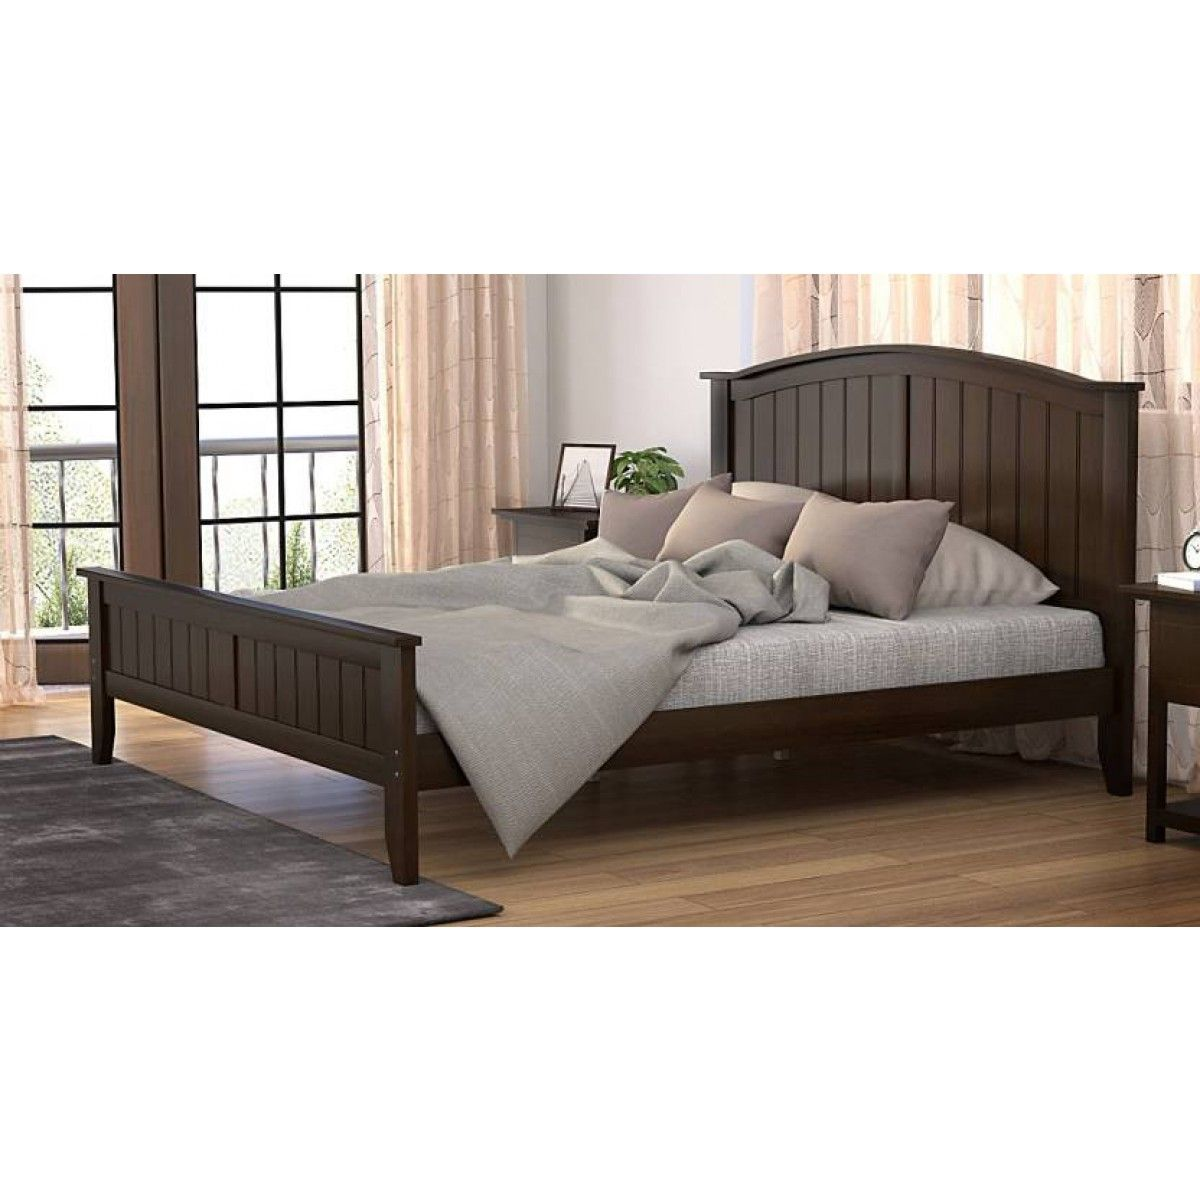 2018 Awesome Bed Design King Size Bed Buy Online Wooden King